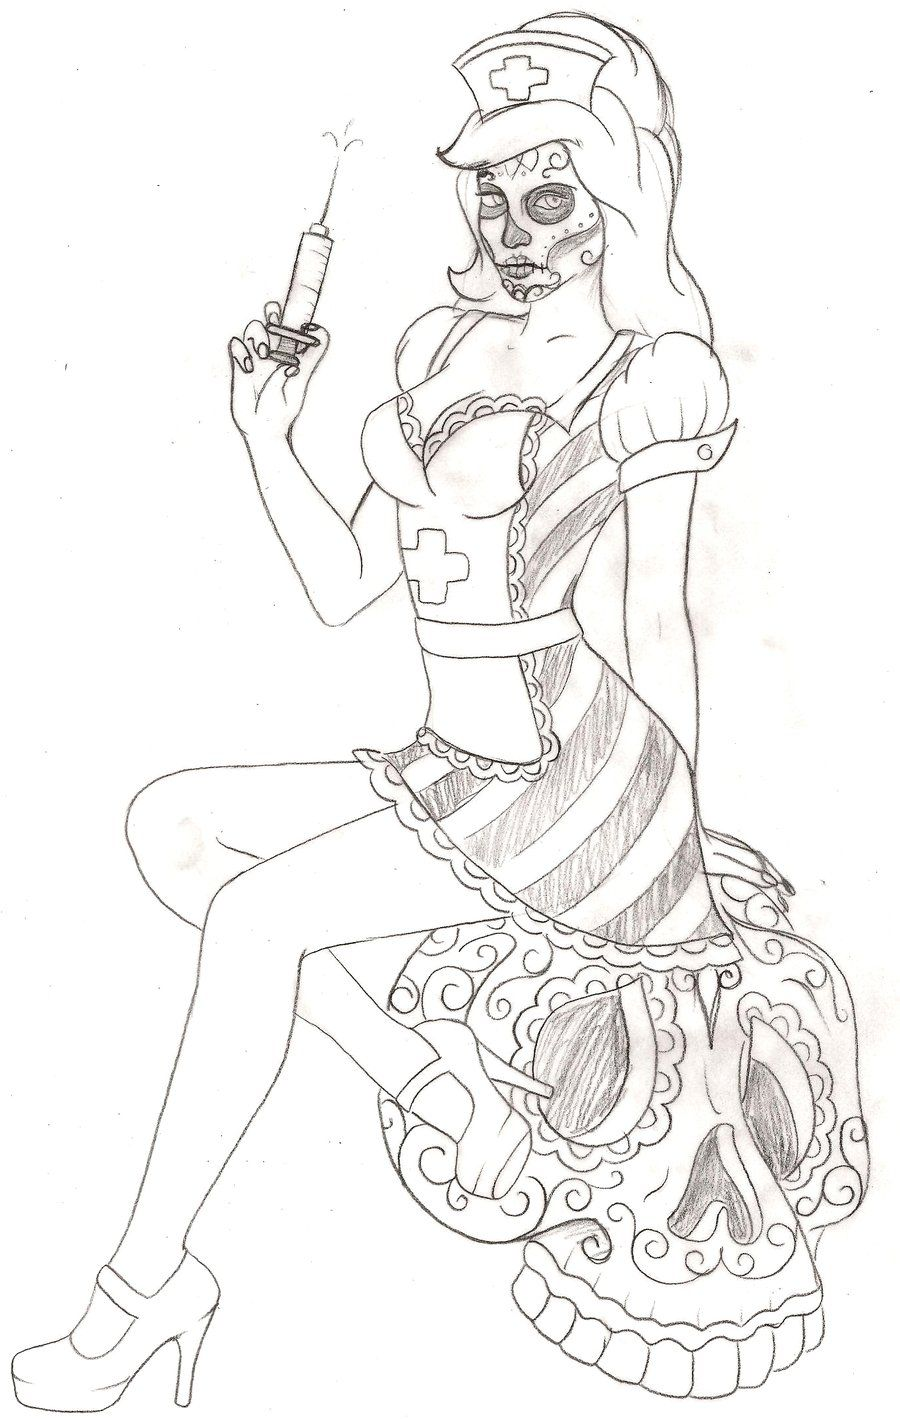 Tattoo pin up girls designs - Day Of The Dead Nurse And Sugar Skull Pin Up Tattoo Flash By Metacharis On Deviantart